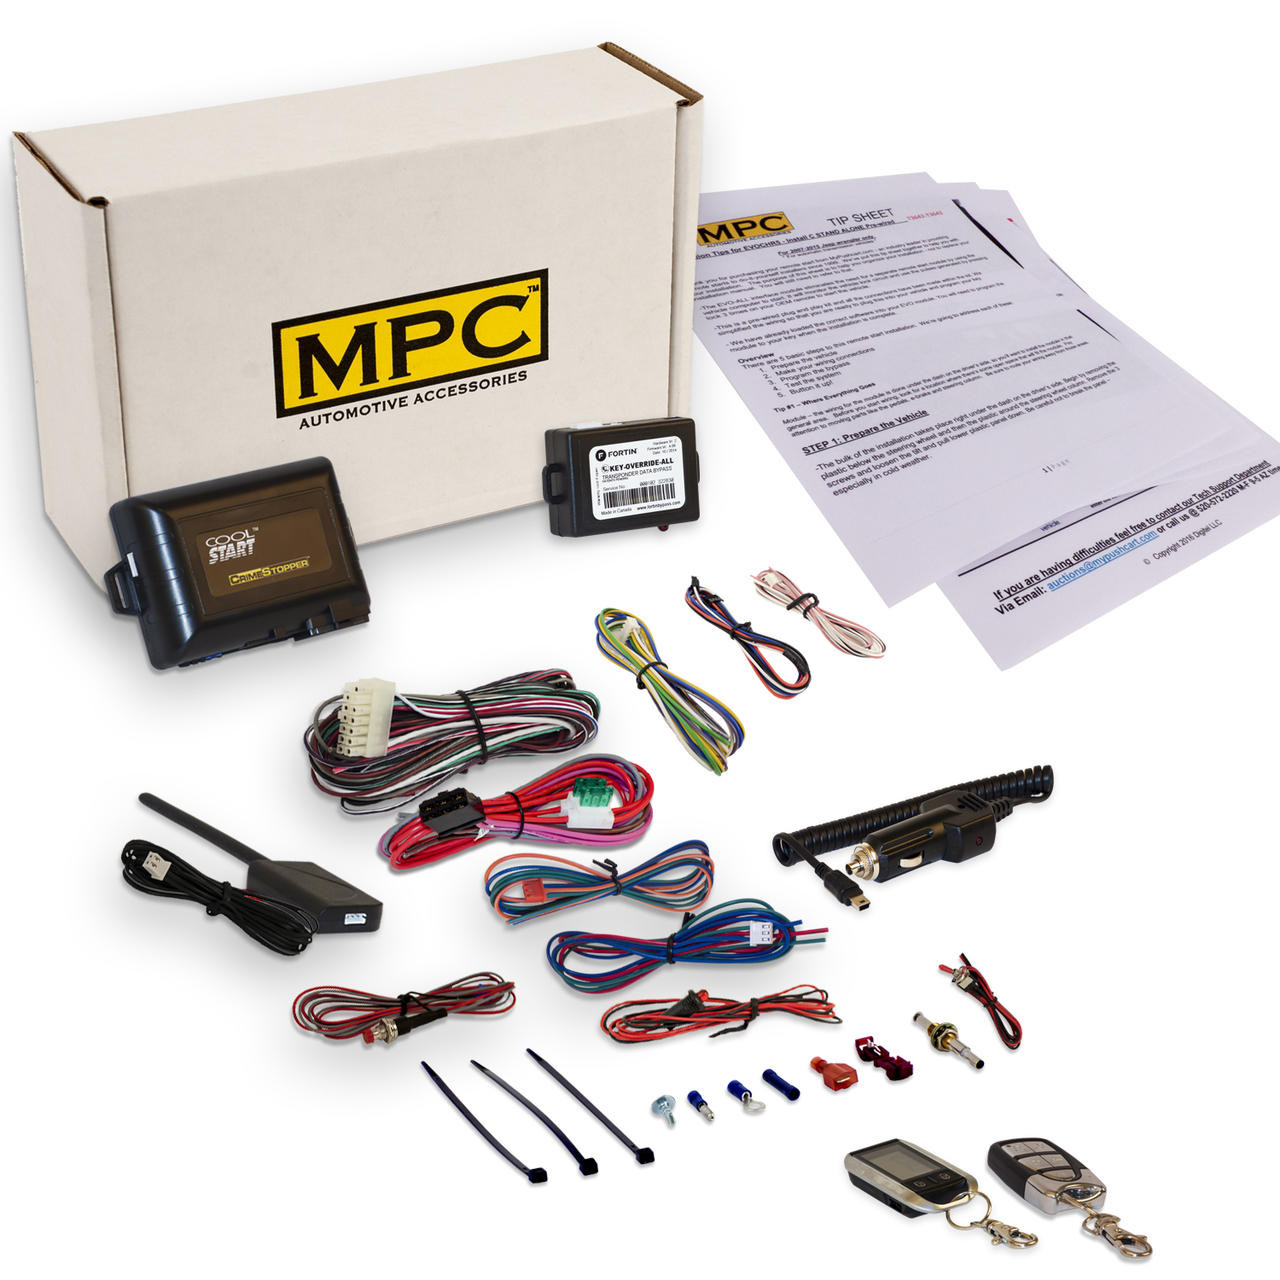 MPC 2 Way LCD Remote Start W/Keyless Entry Kit For 2007 Lincoln Navigator